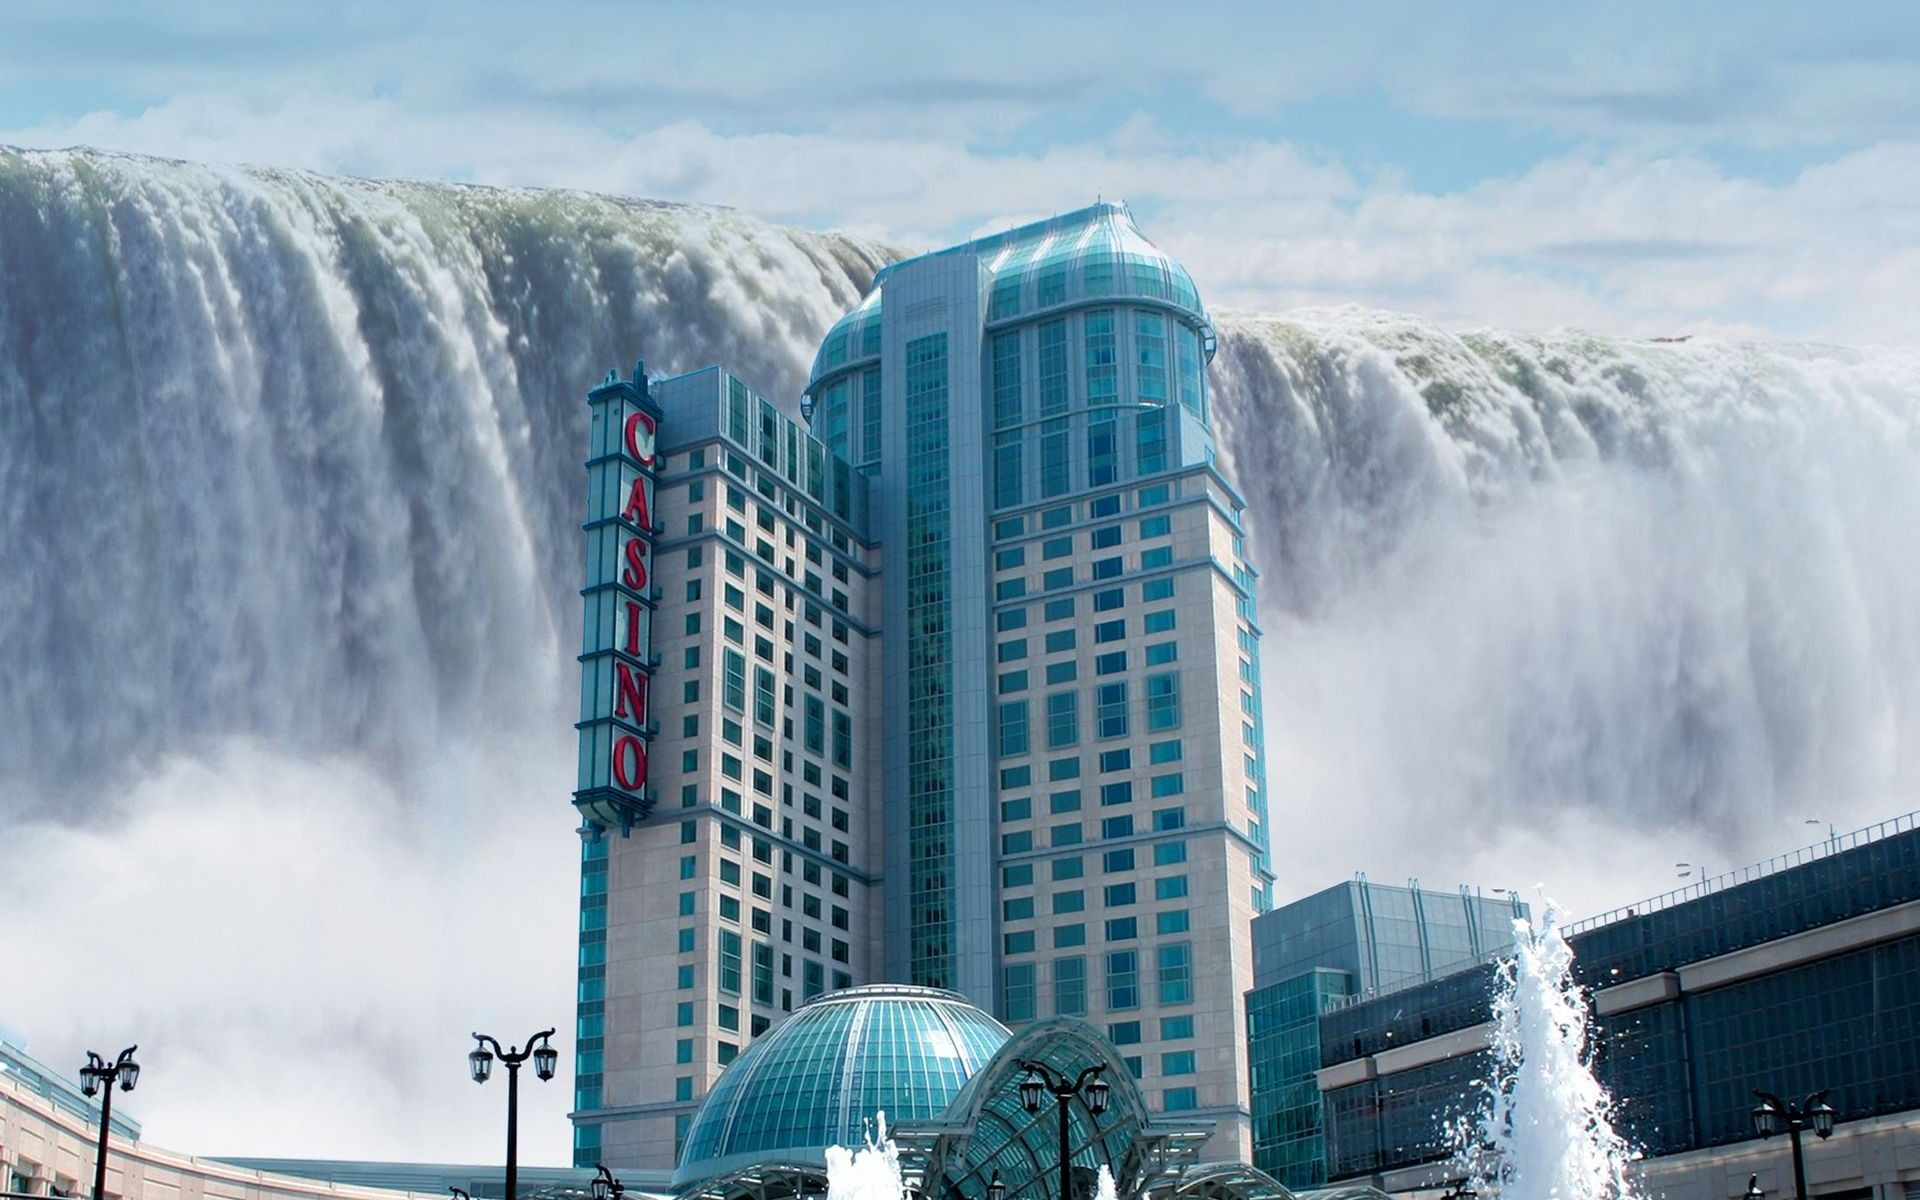 Seneca Casinos Niagara Falls Canada Hd Wallpapers Hotels Near